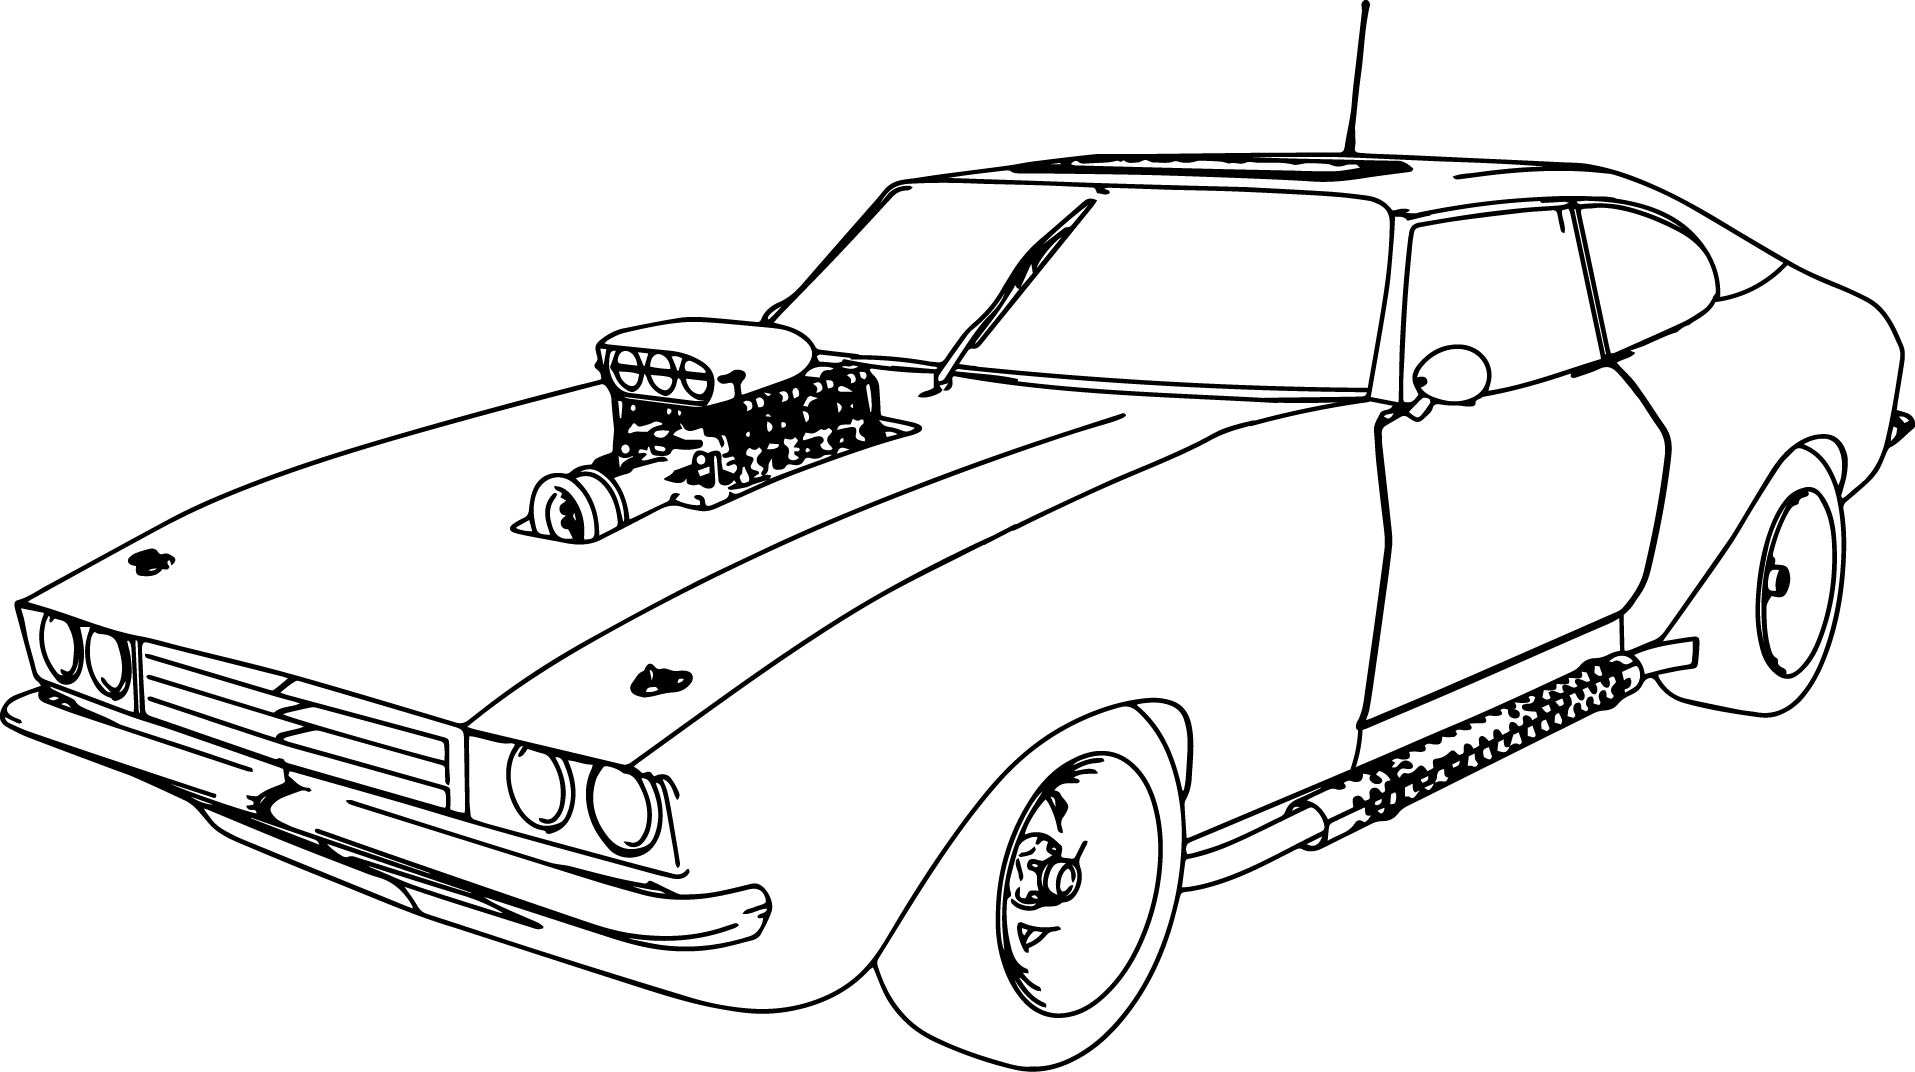 ferrari coloring pictures ferrari coloring pages to download and print for free coloring pictures ferrari 1 1